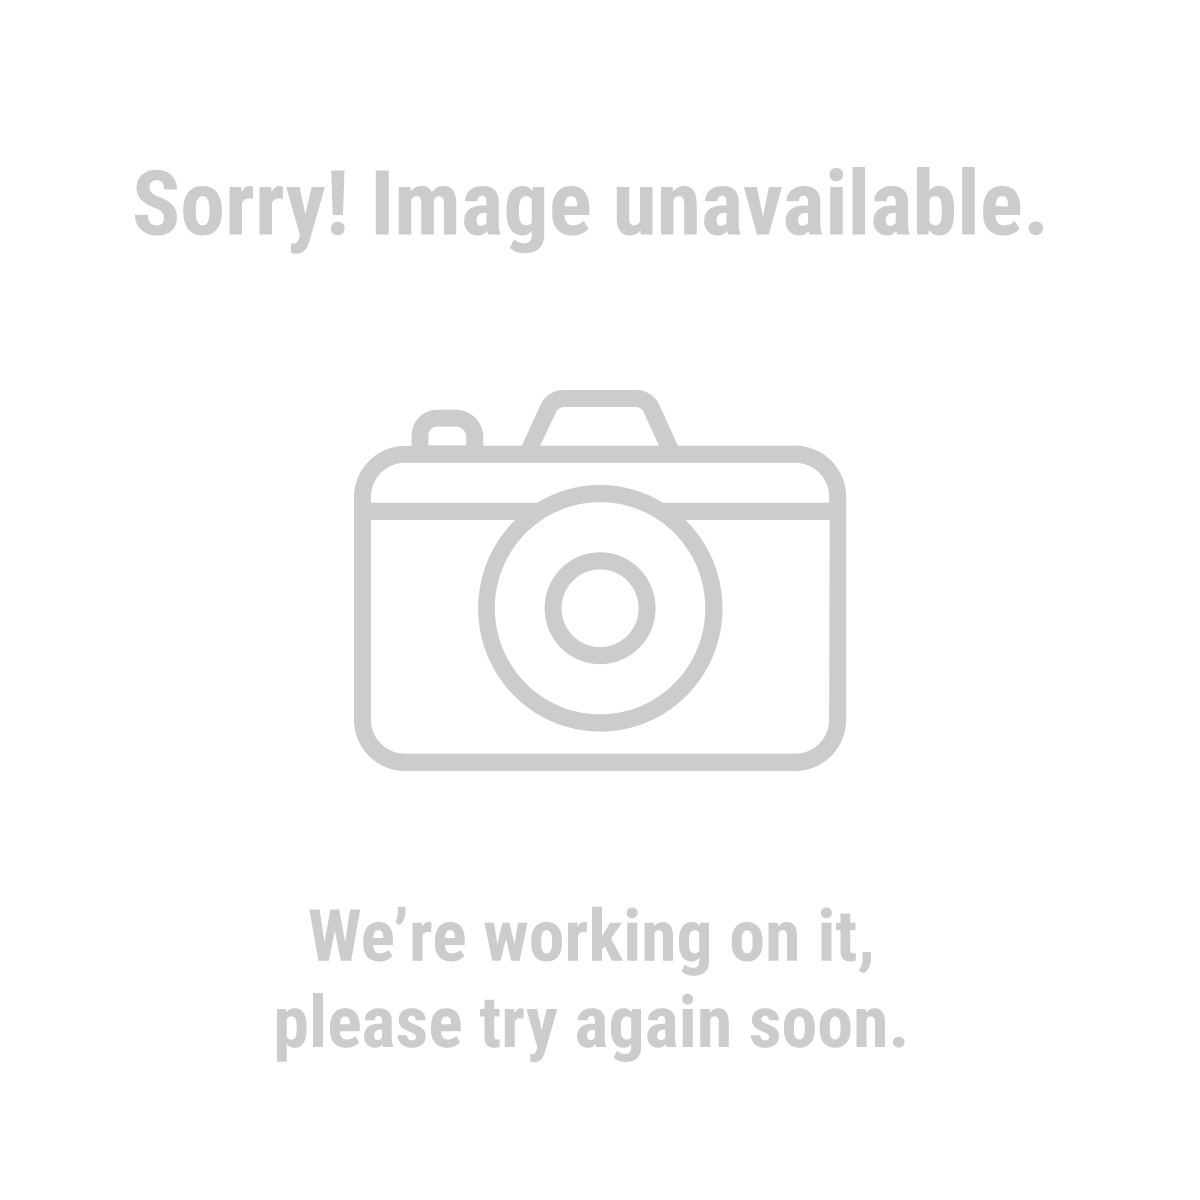 HFT 61799 3 Piece 1-1/2 in. Keyed-Alike Padlocks